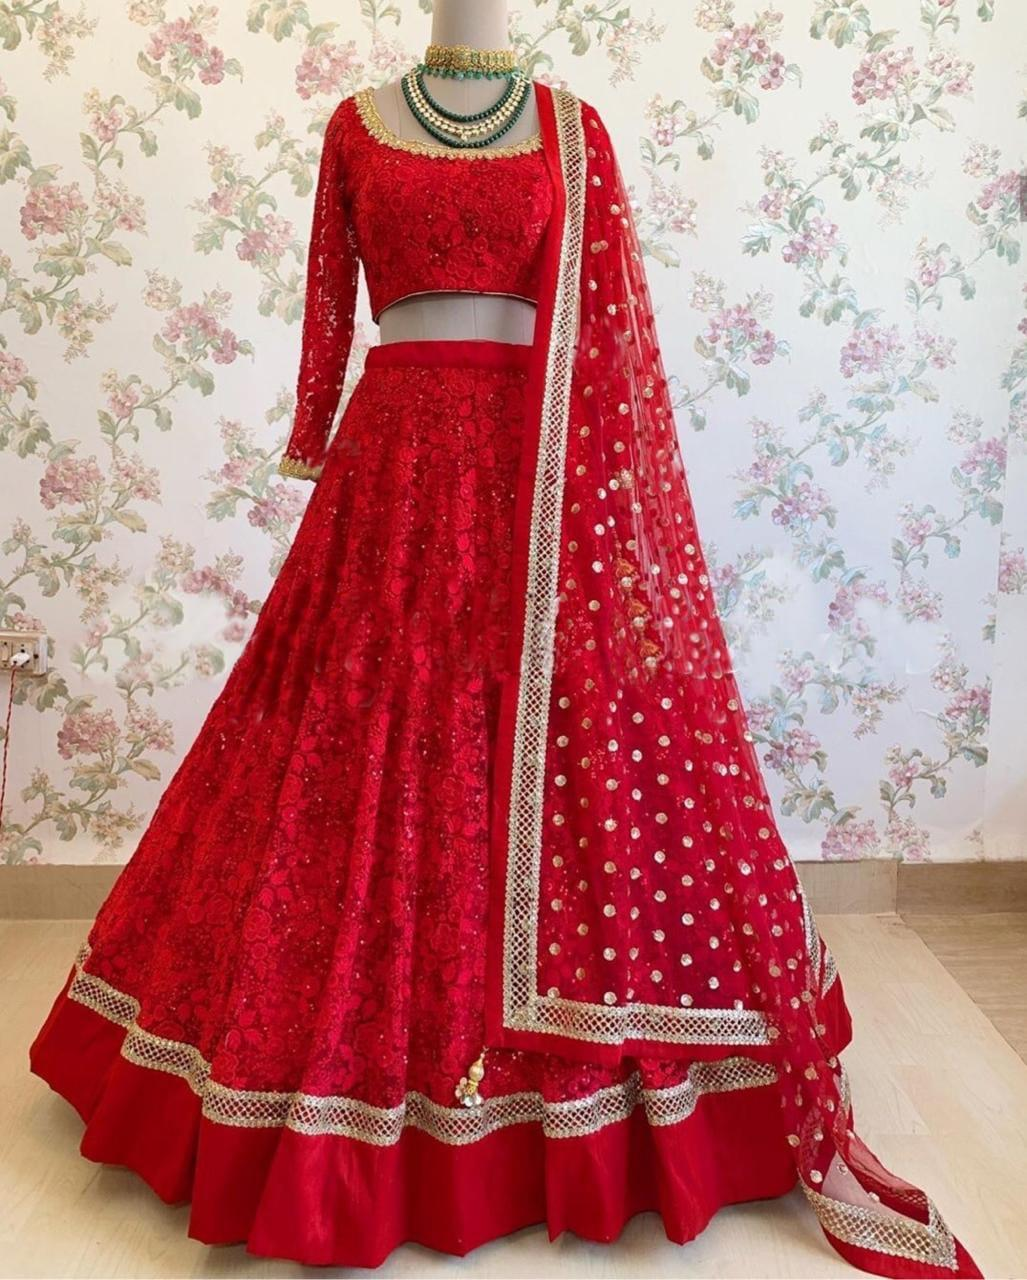 Red Georgette Embroidered Party Lehnga Choli Online Shopping